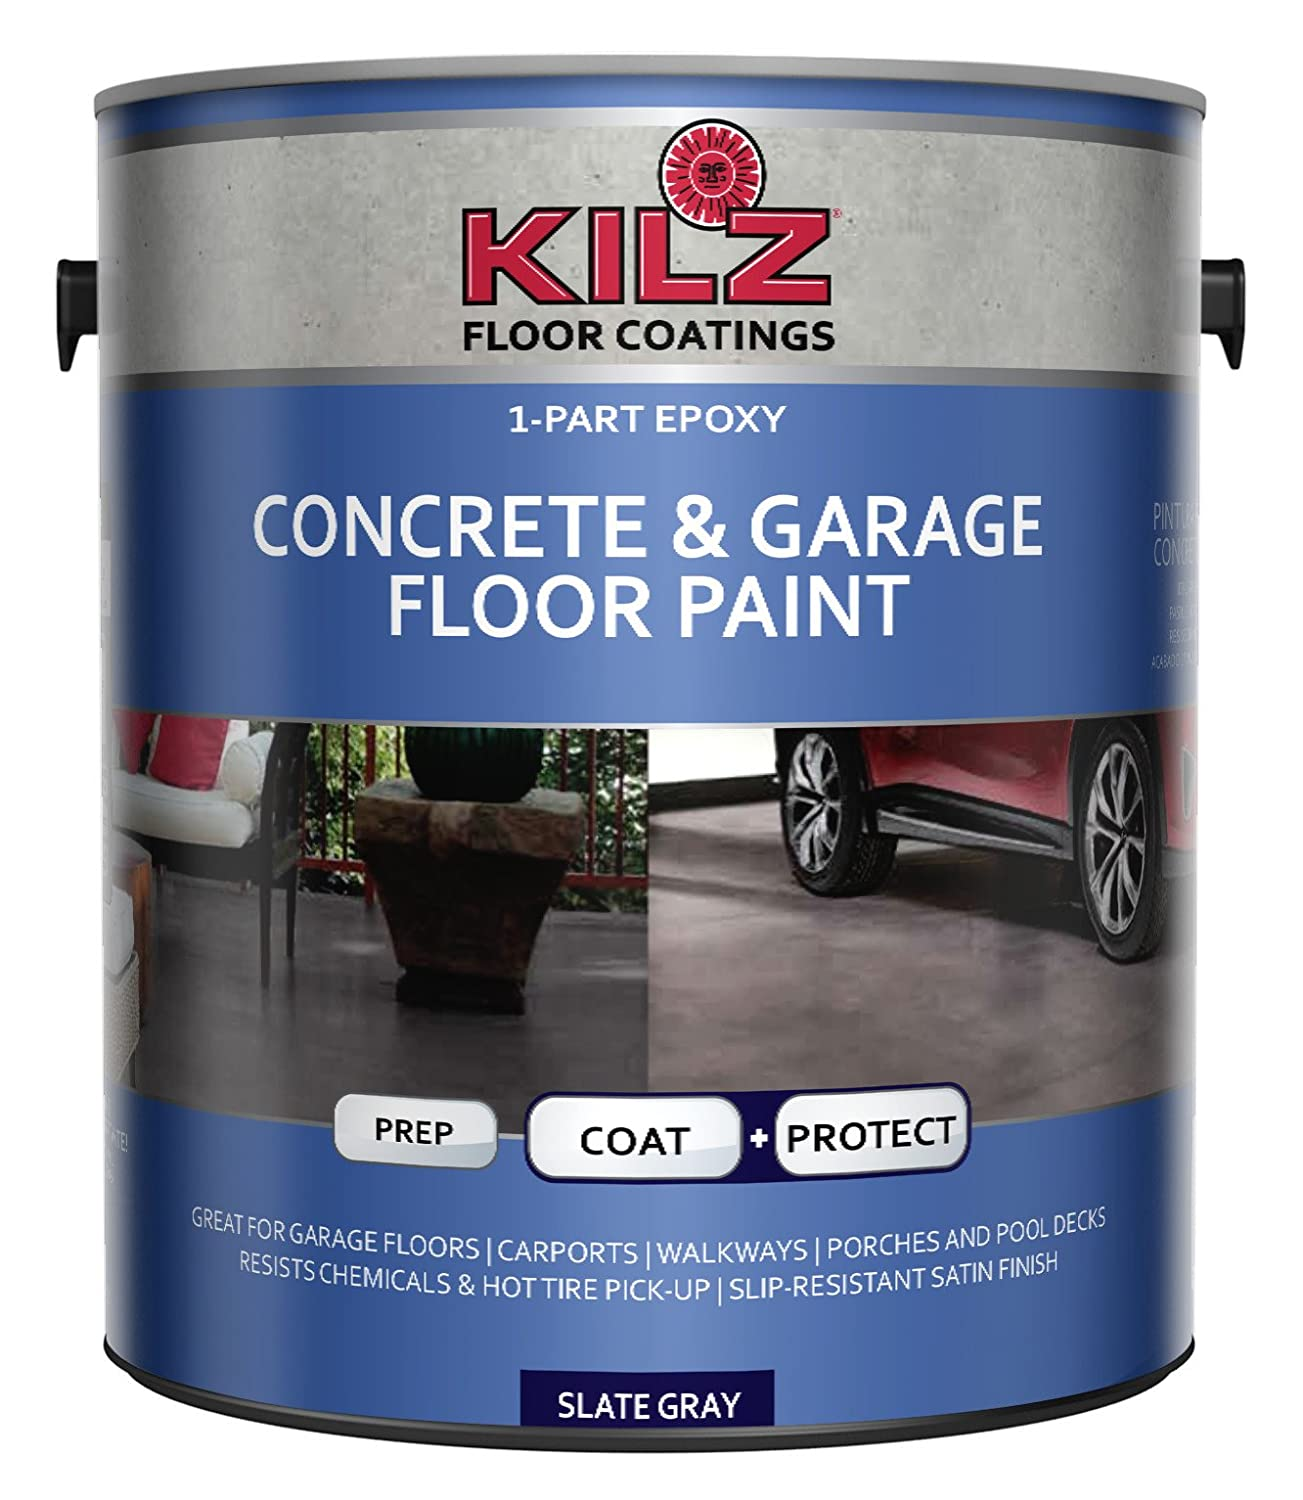 8. KILZ 1 part Epoxy Acrylic Concrete Garage Floor Paint